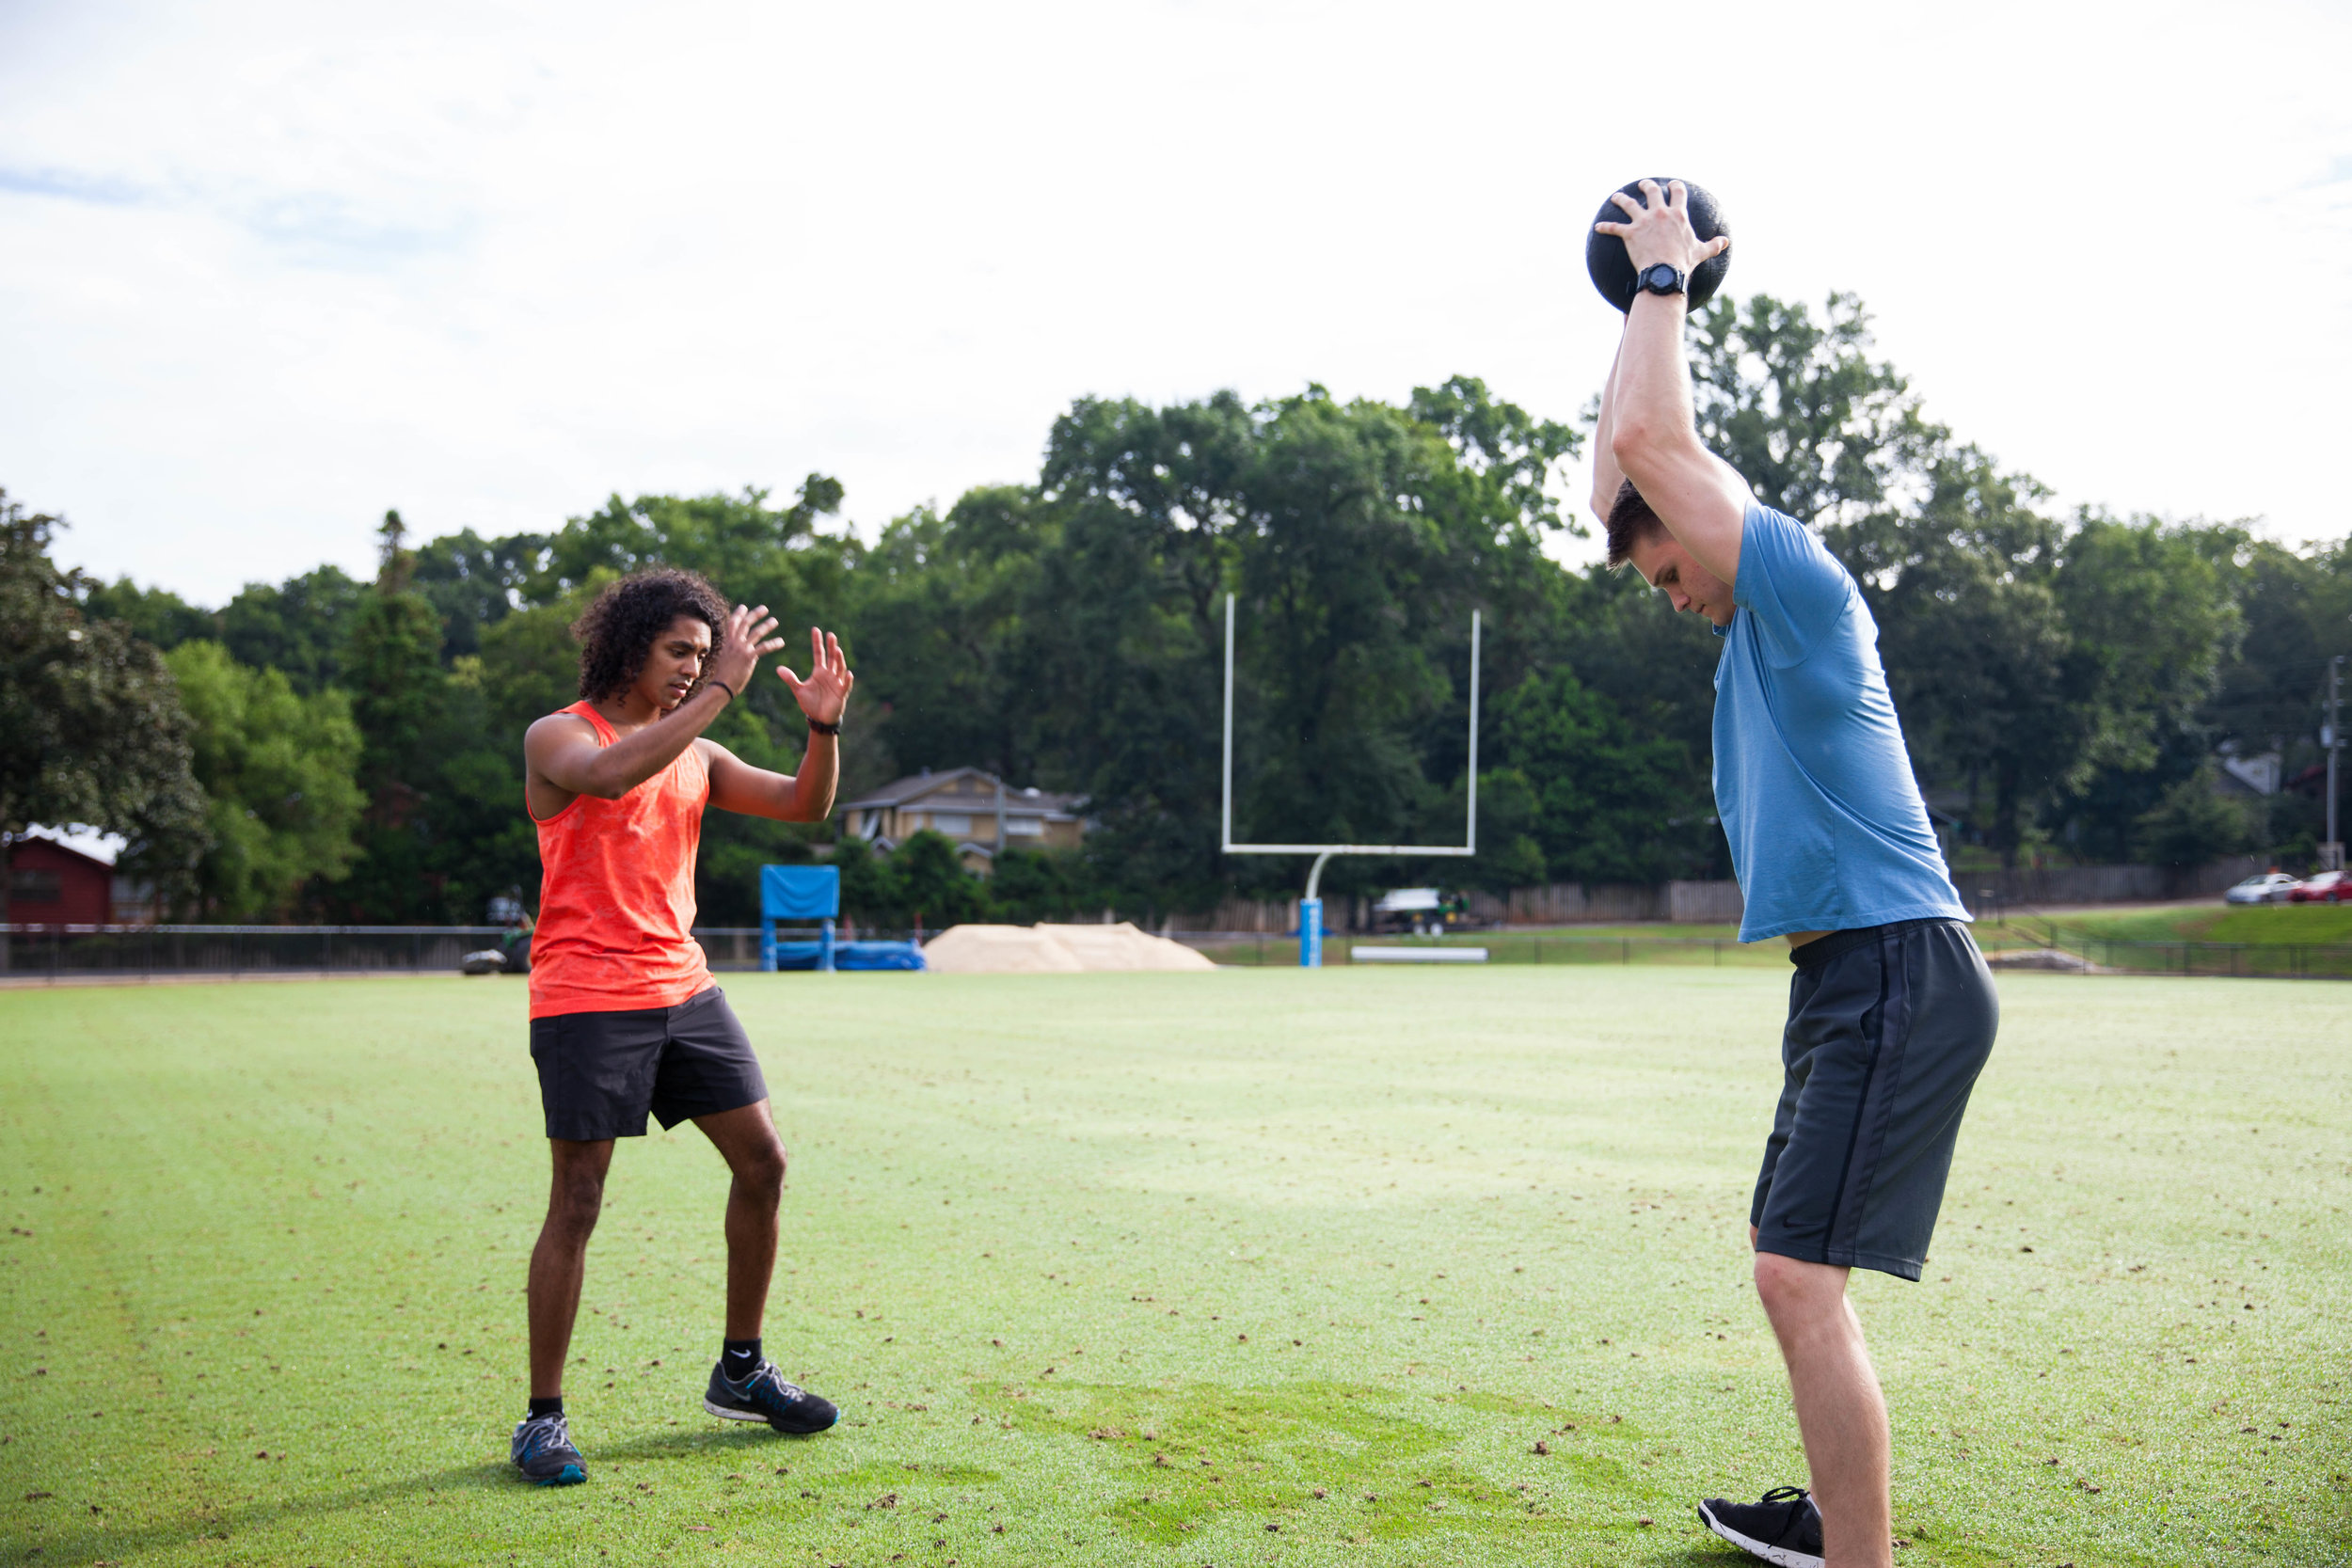 Personal Training - One-on-one personal training. Workouts are designed for your unique health and fitness goals. Available in 30-minute and 60-minute sessions.